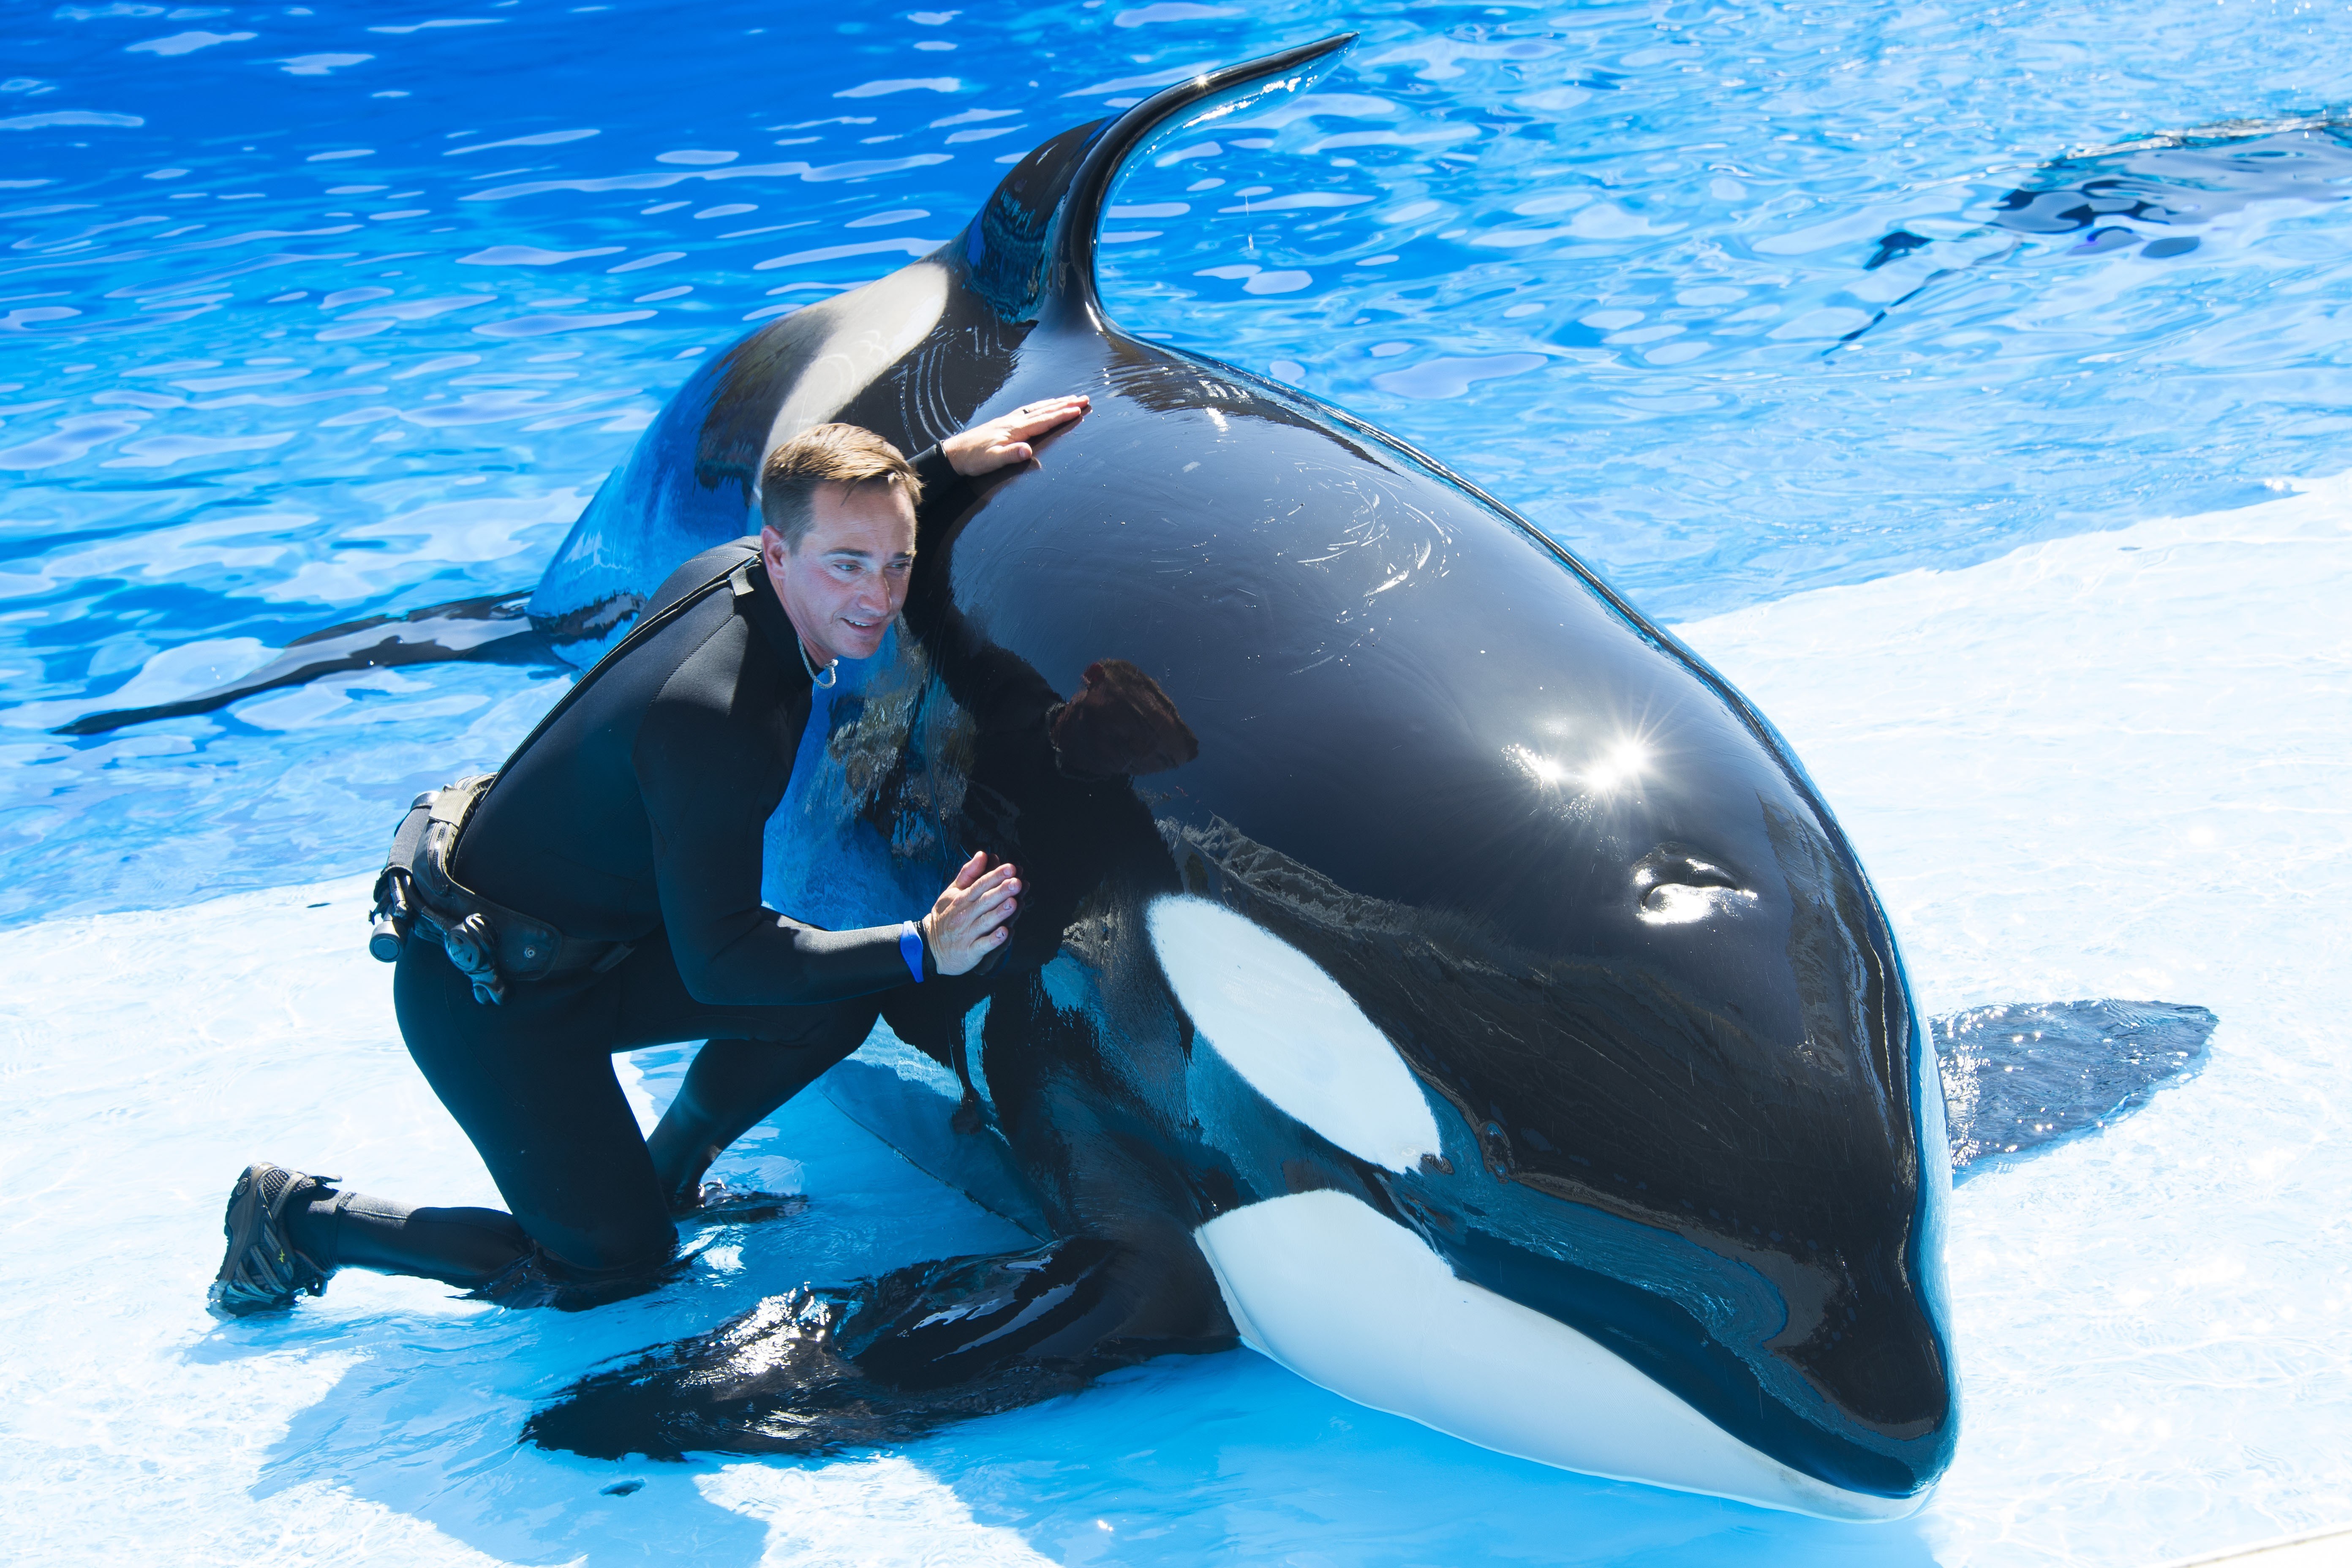 seaworld's latest tour lets you get up-close with killer whales | blogs